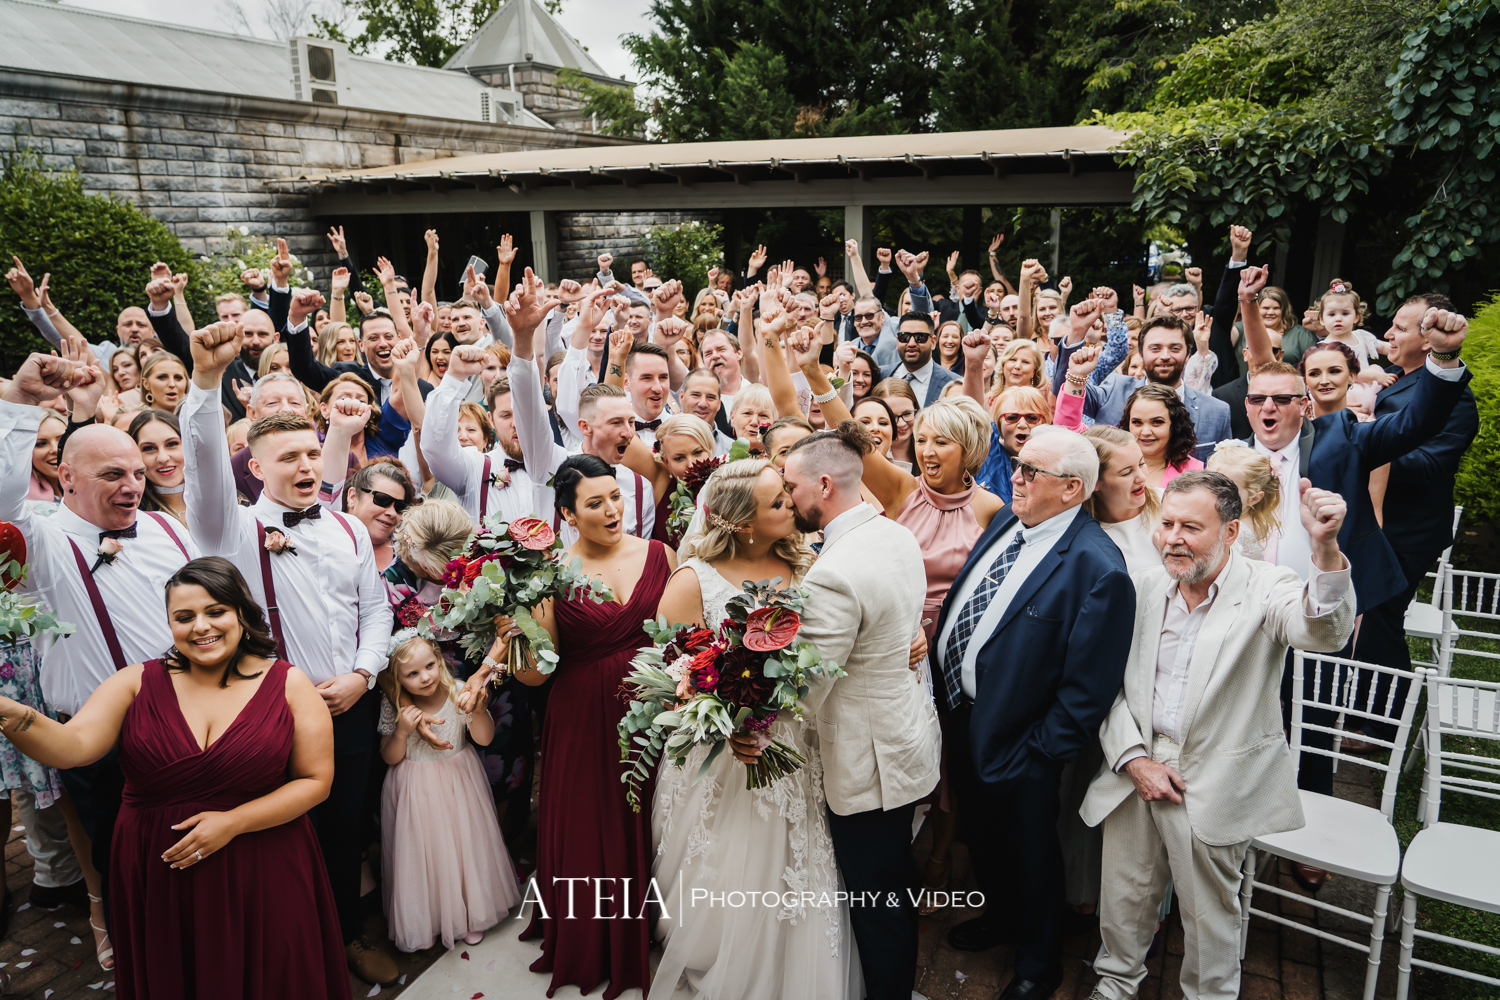 , Witchmount Winery Wedding Photography Plumpton by ATEIA Photography & Video